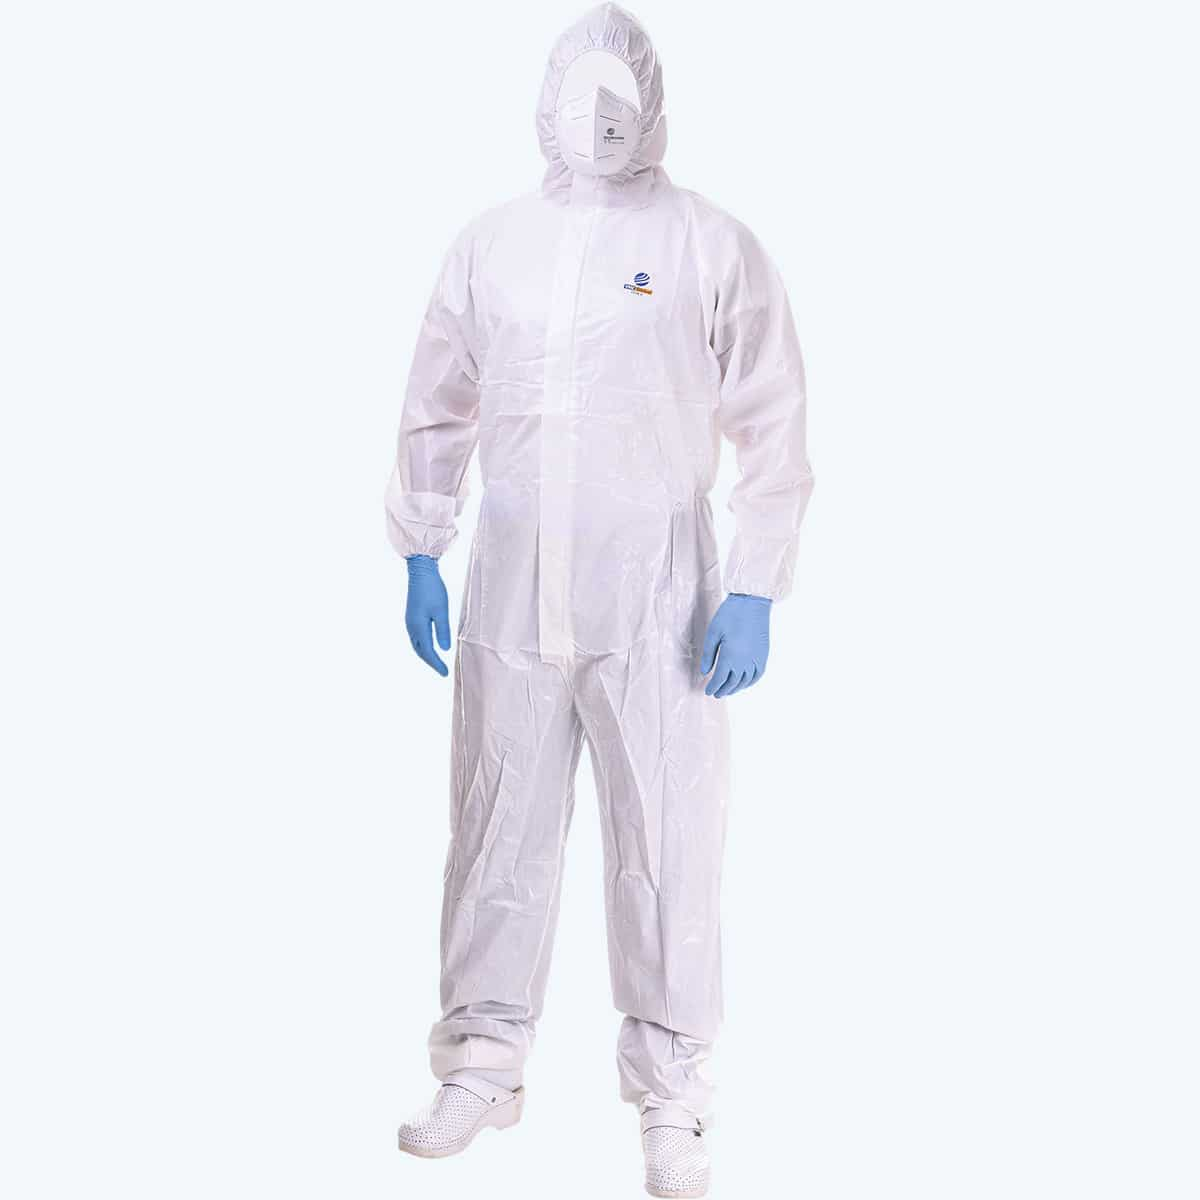 Protective Medical Cat 3 Type Suit 6b. A white suit that covers your entire body from water, dirt and various viruses